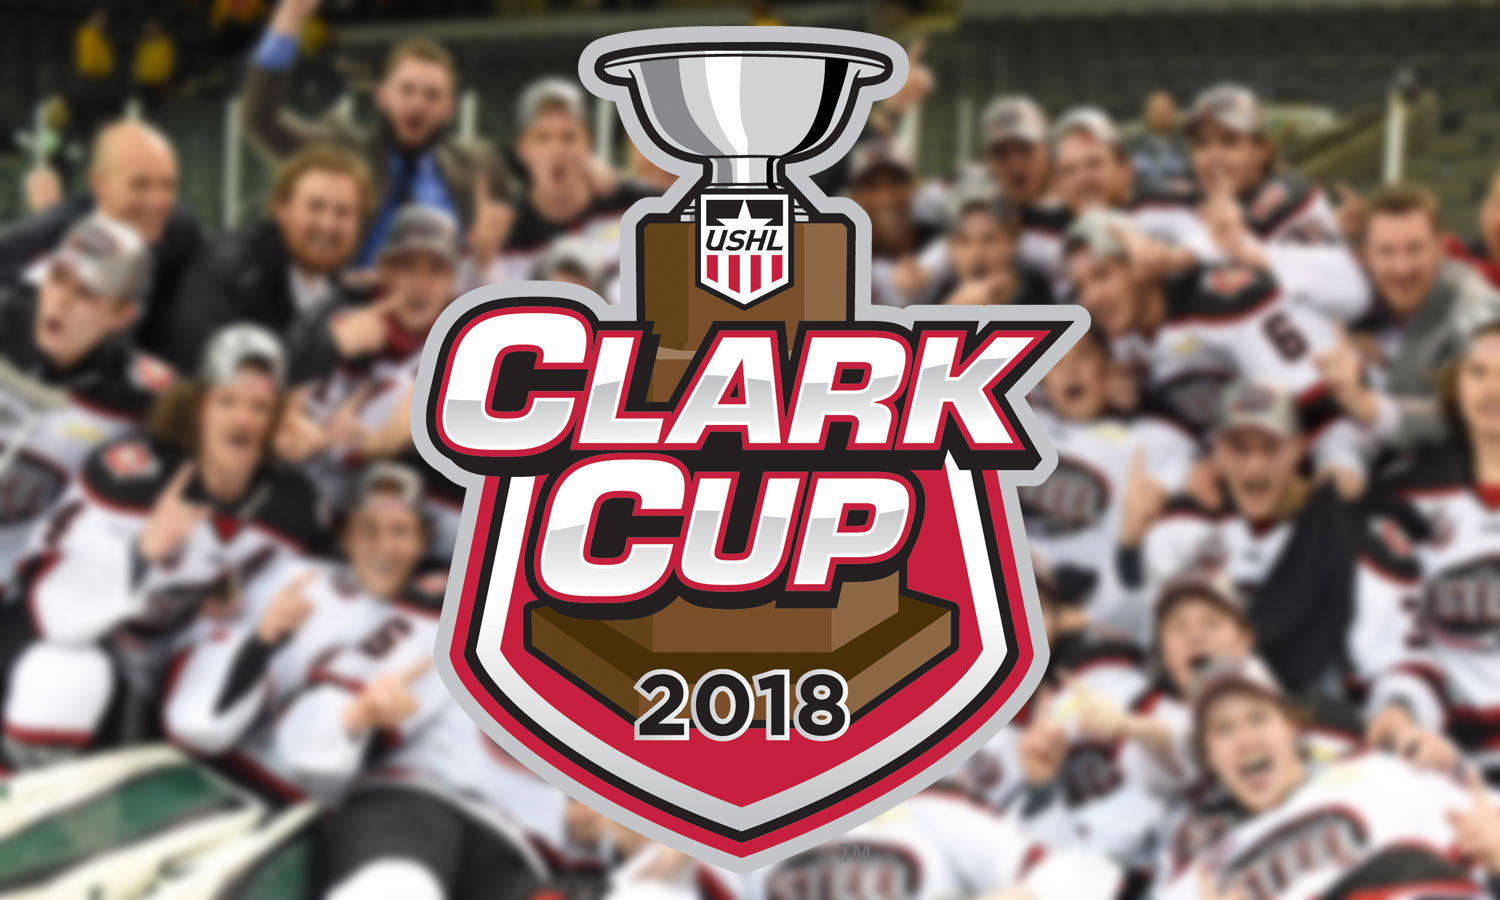 USHL: 2018 Clark Cup Playoffs Hub